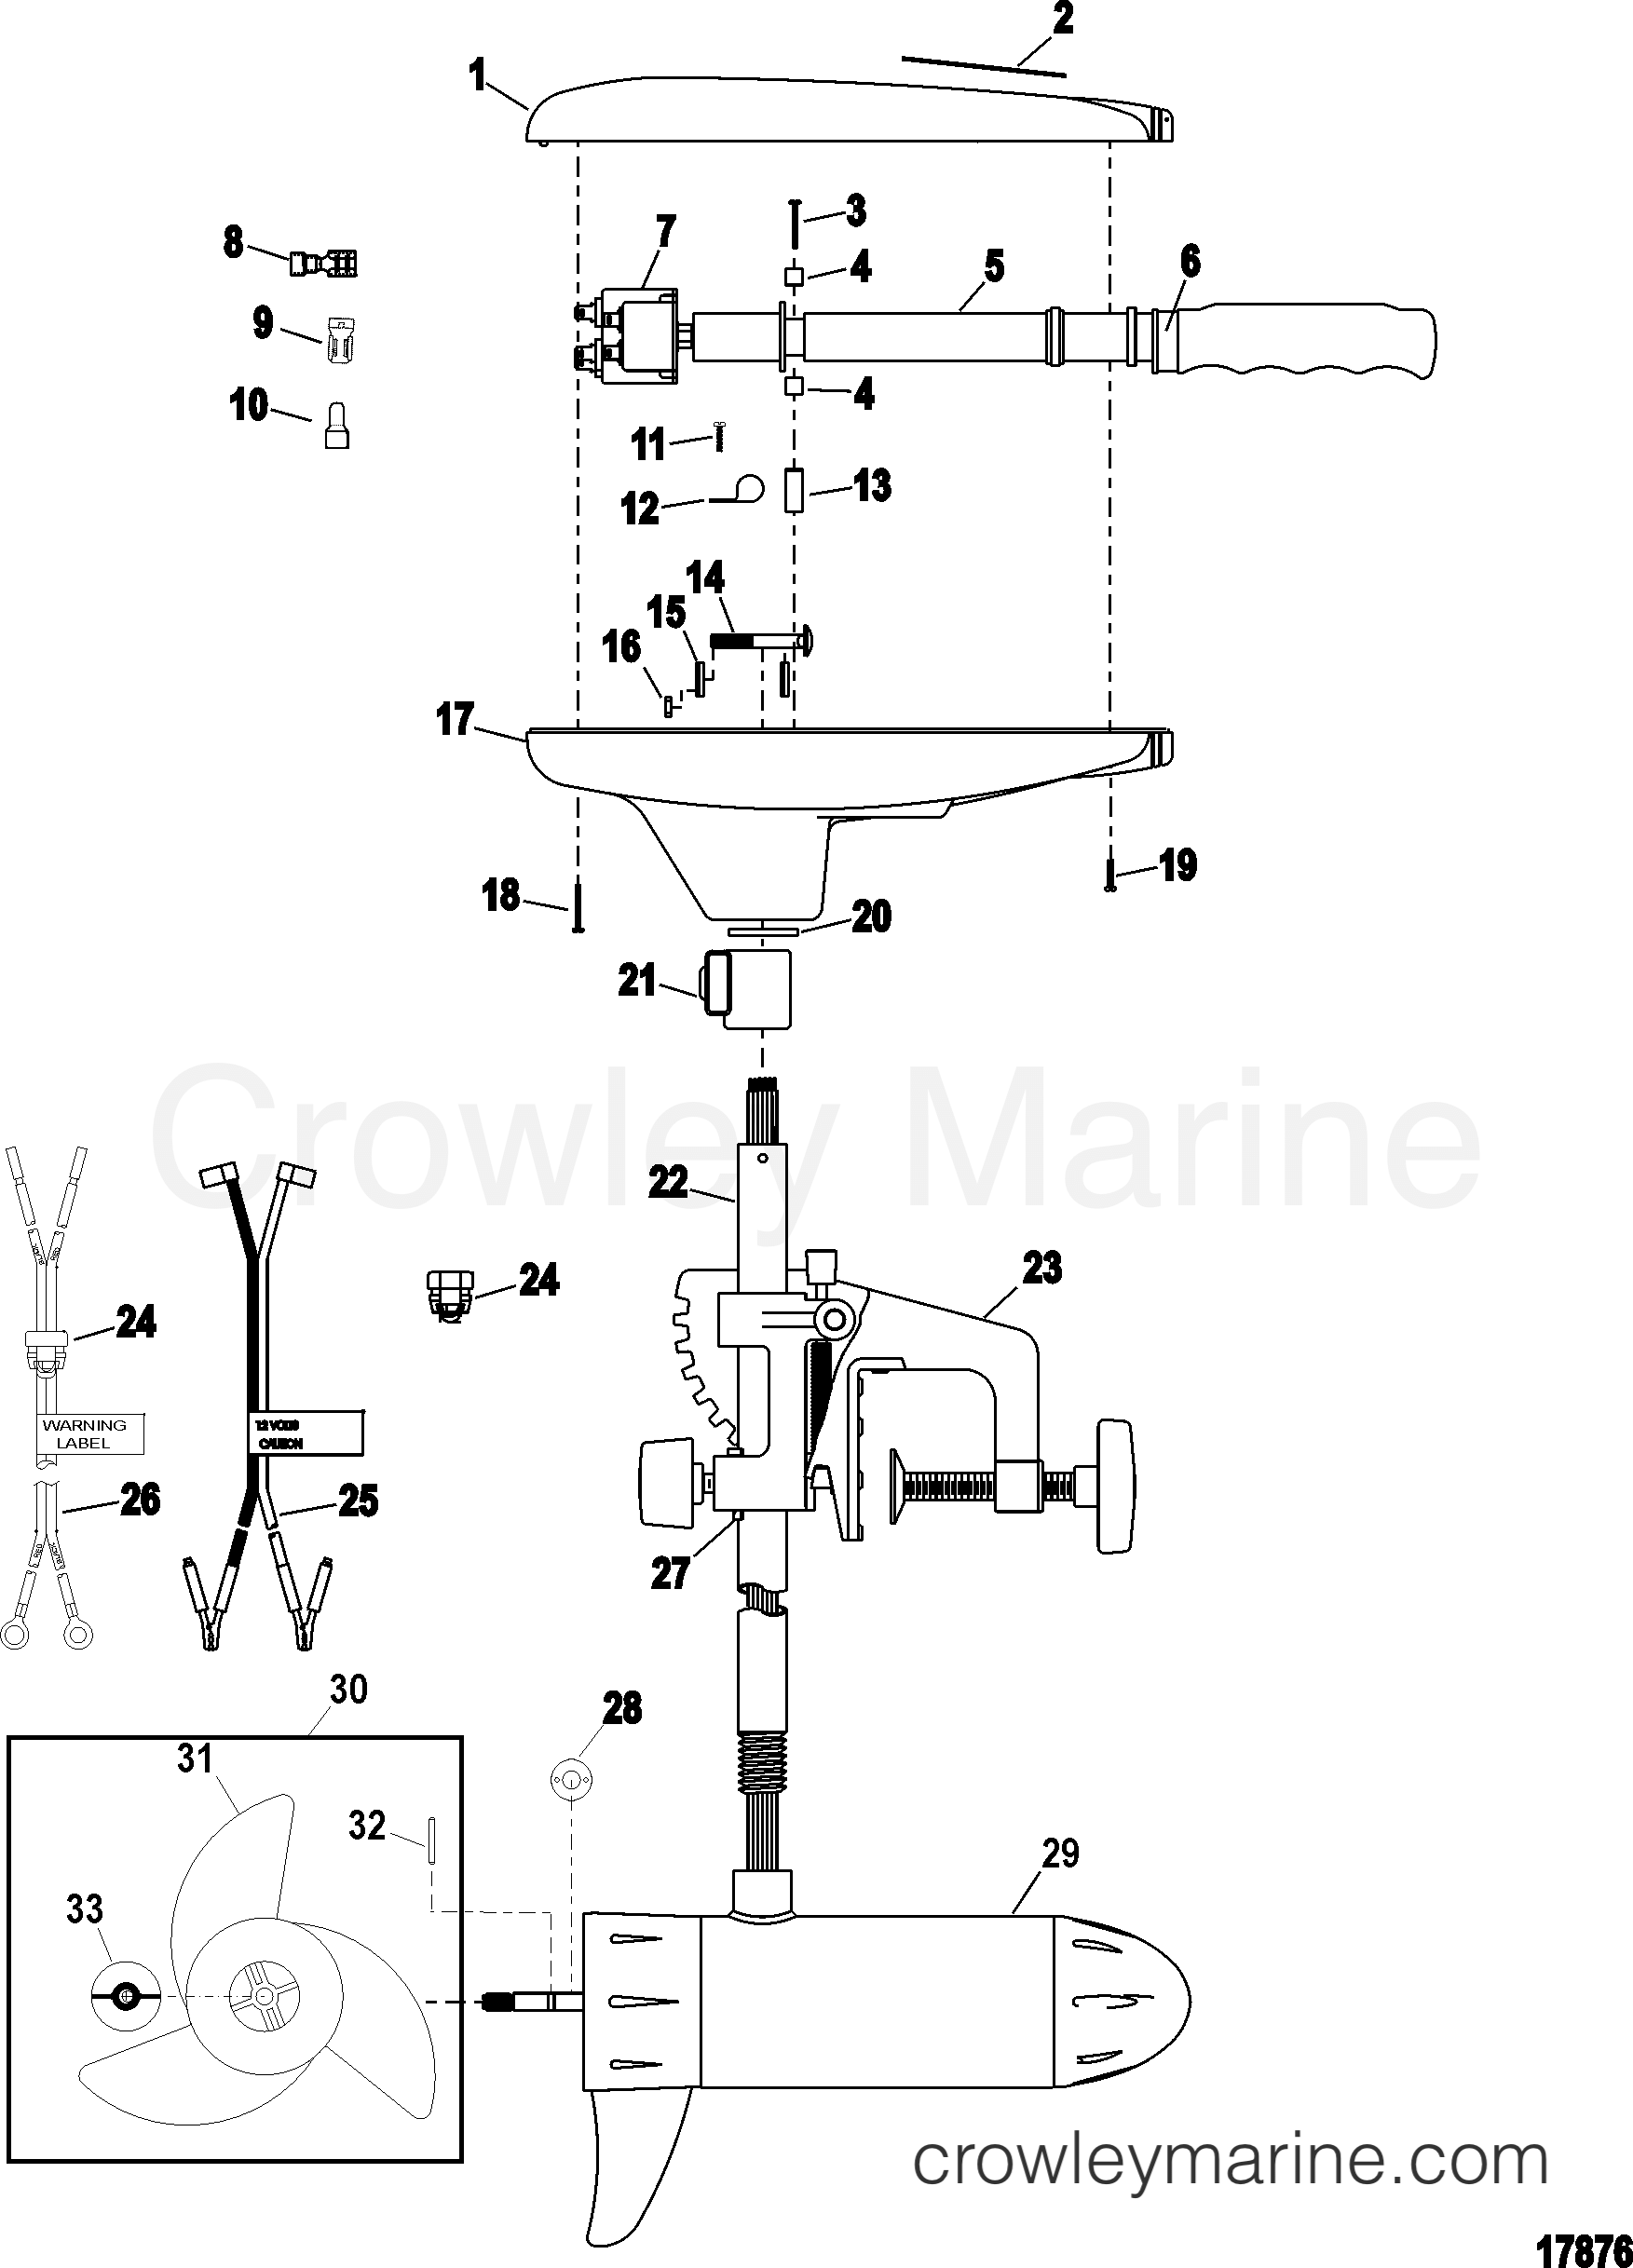 Skeeter Boats Wiring Diagram moreover Parts additionally 556603 Wiring Up A Teleflex Tach moreover Motor Volt Diagram Trolling Wiring Watersnake 12 further Showthread. on omc trolling motor 12 volt wiring diagram